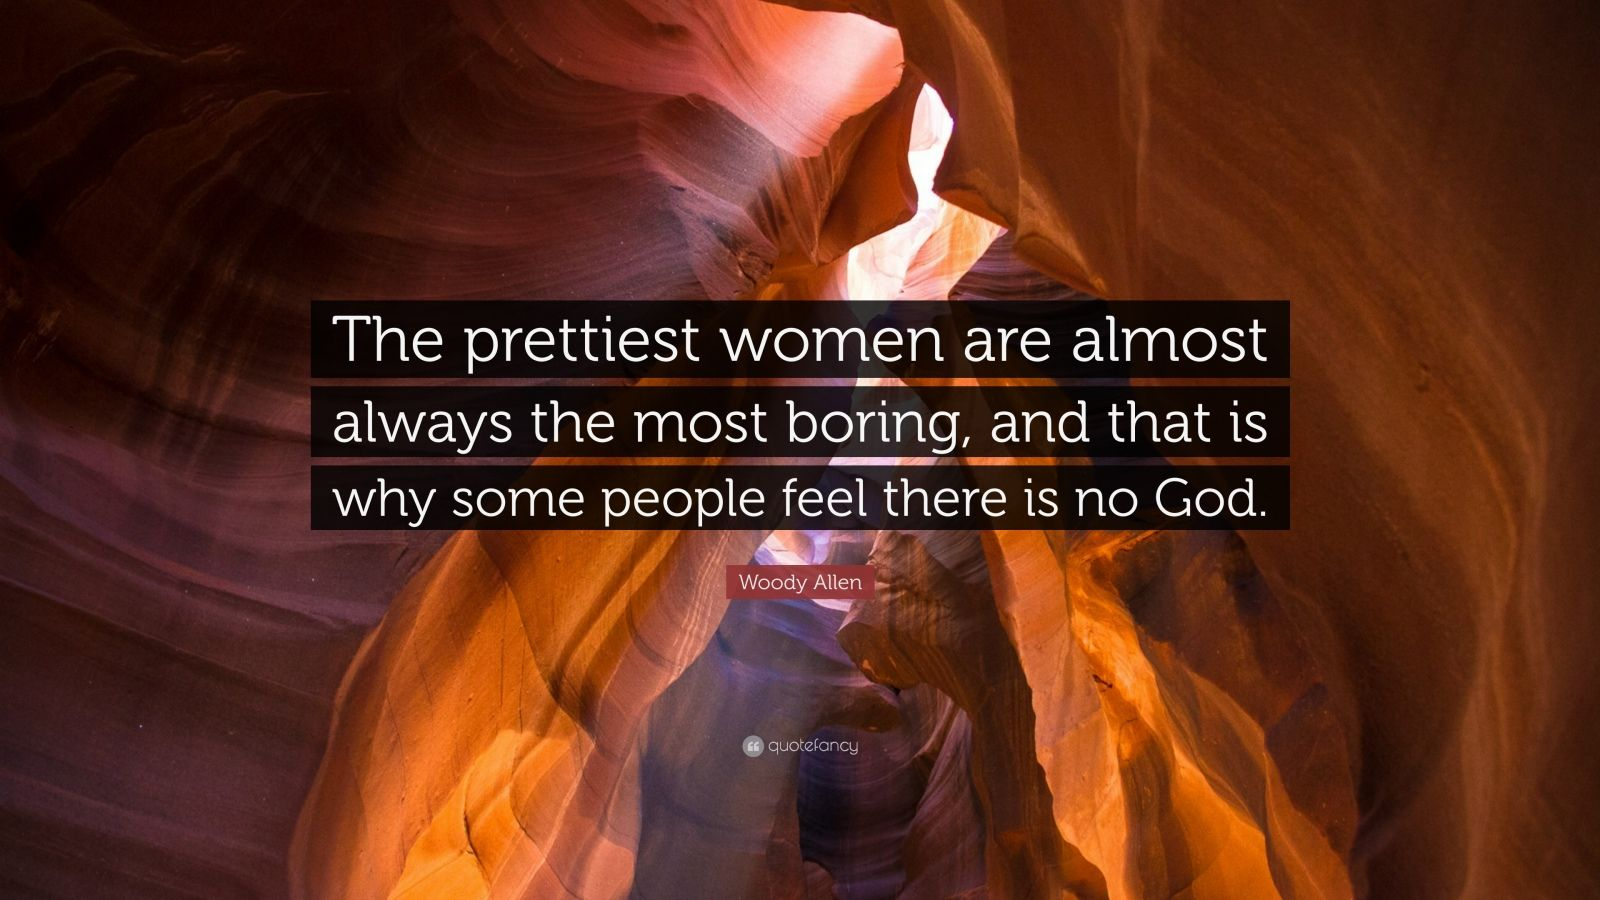 """Woody Allen Quote: """"The prettiest women are almost always the most boring, and that is why some people feel there is no God."""""""